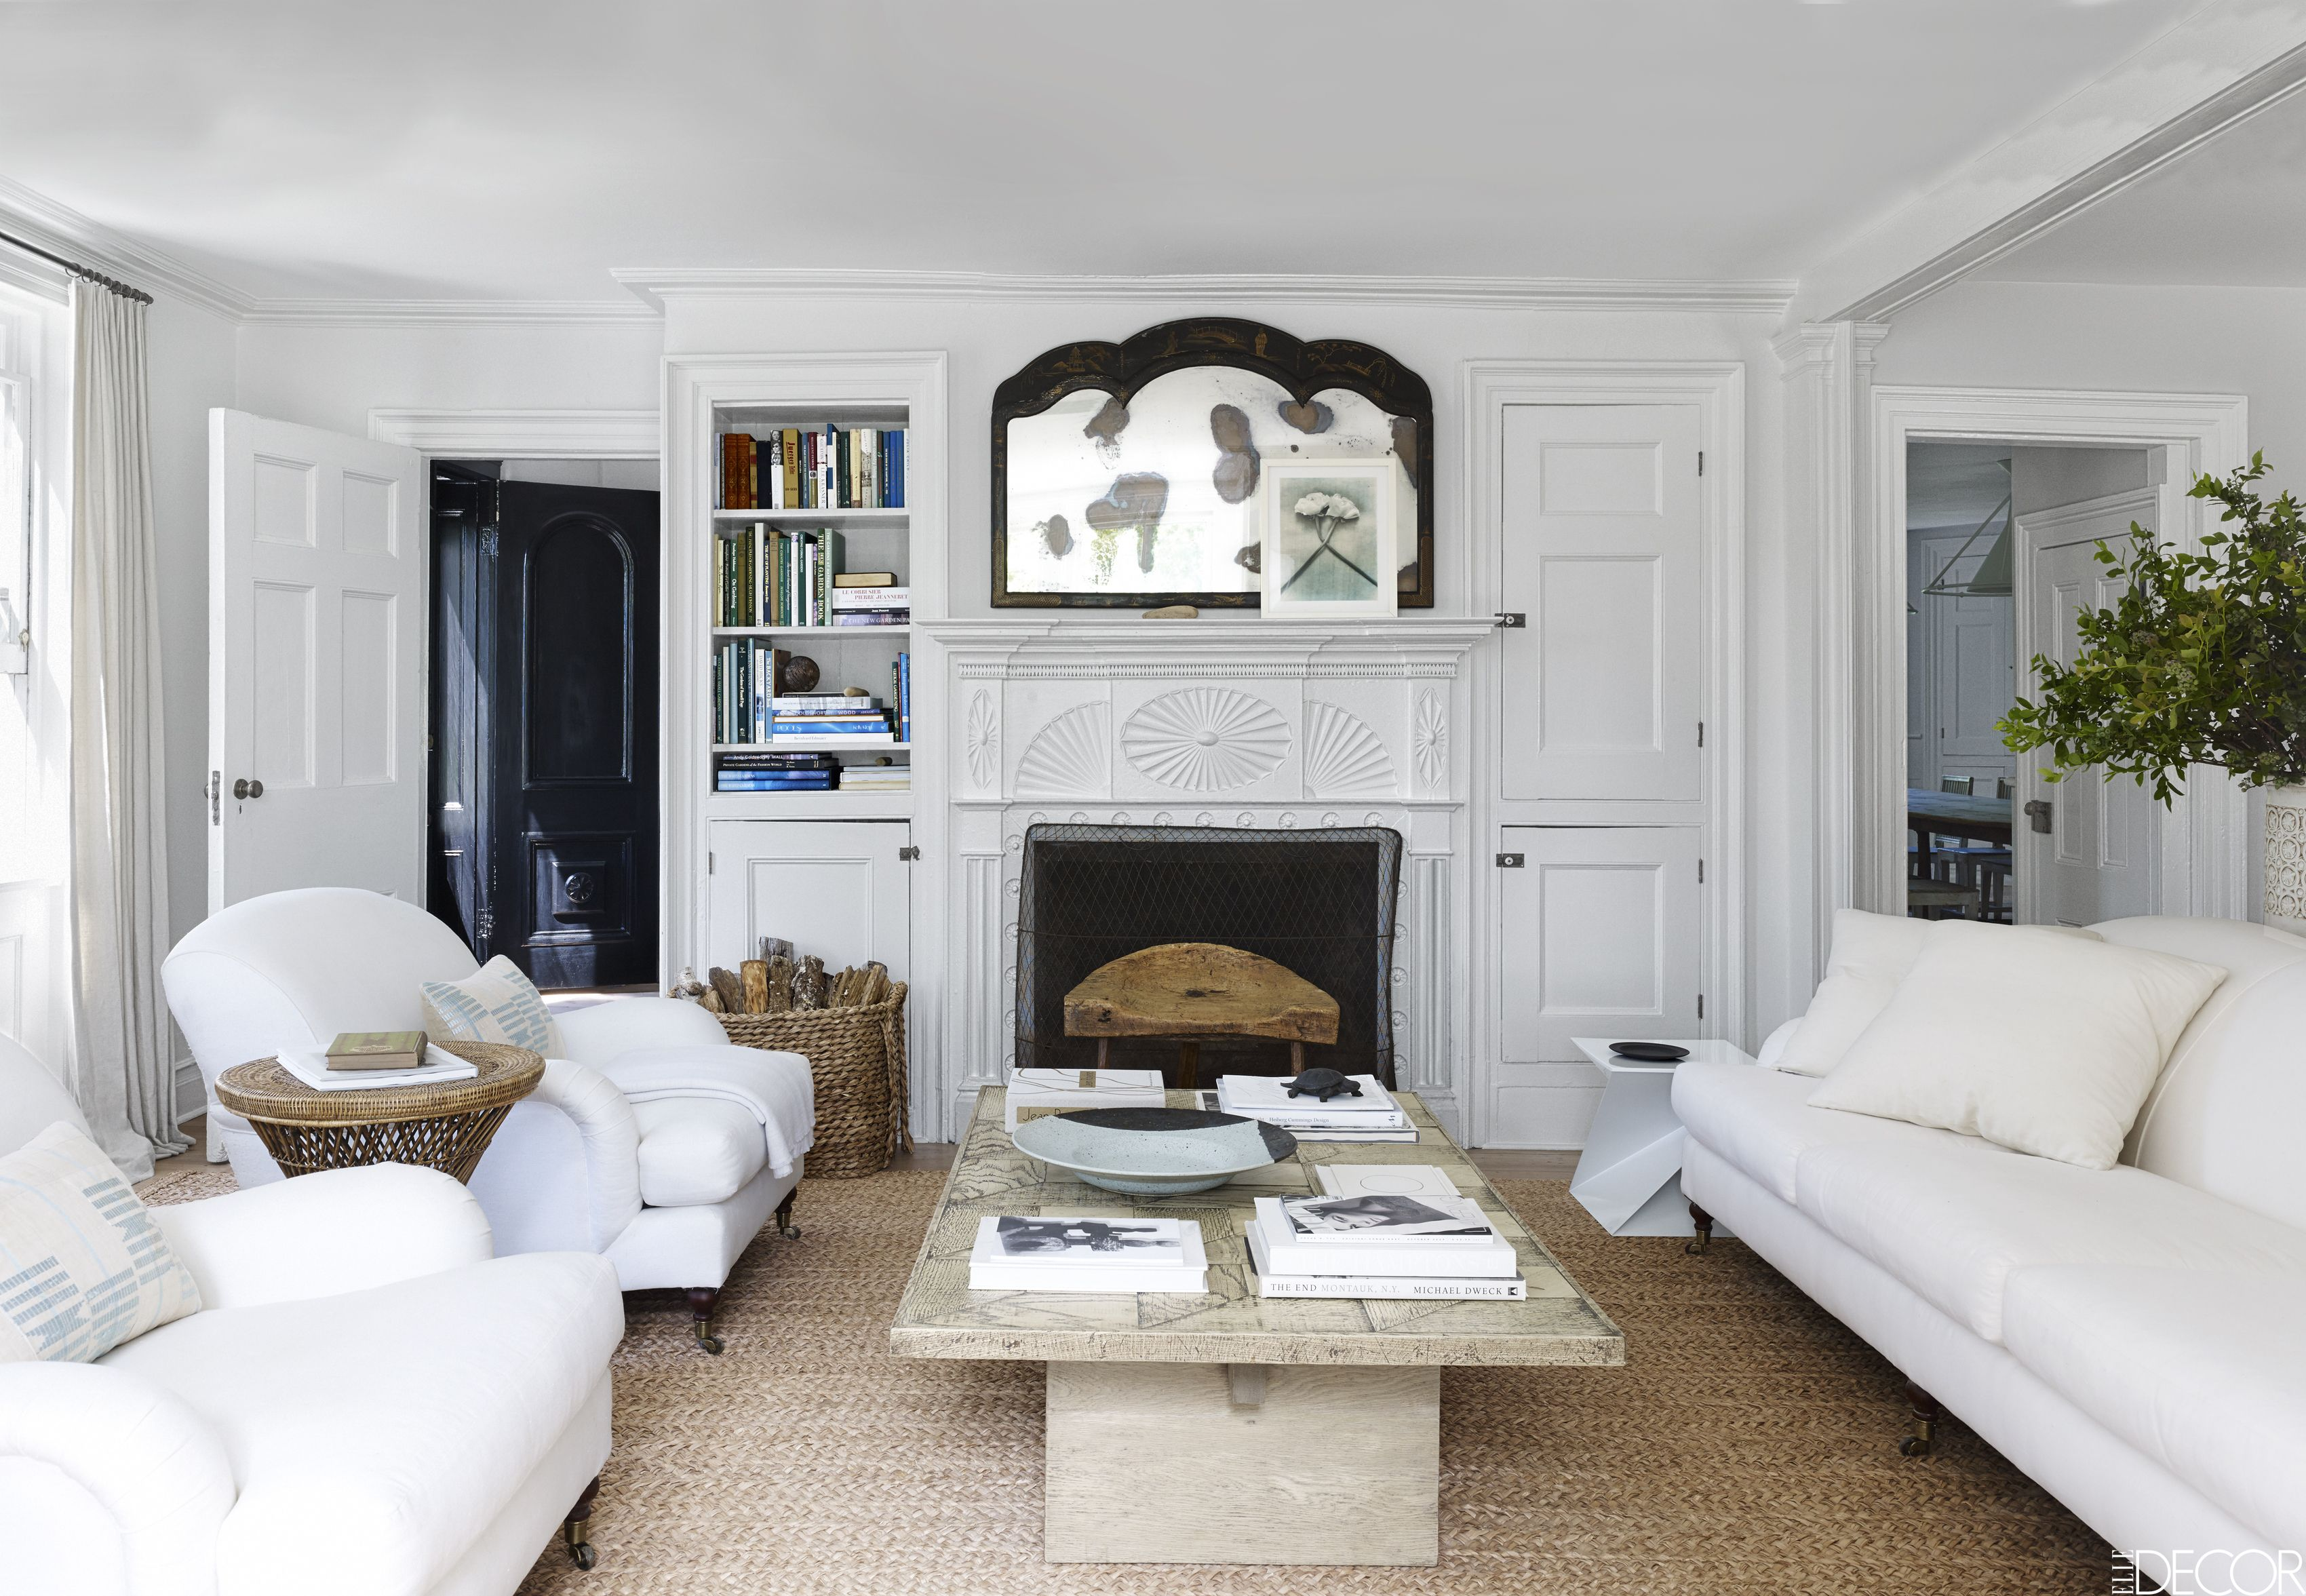 Thereu0027s A Fine Line Between Bland And Beautiful When It Comes To Decorating  Around A White Sofa. These Living Rooms Got It Just Right.